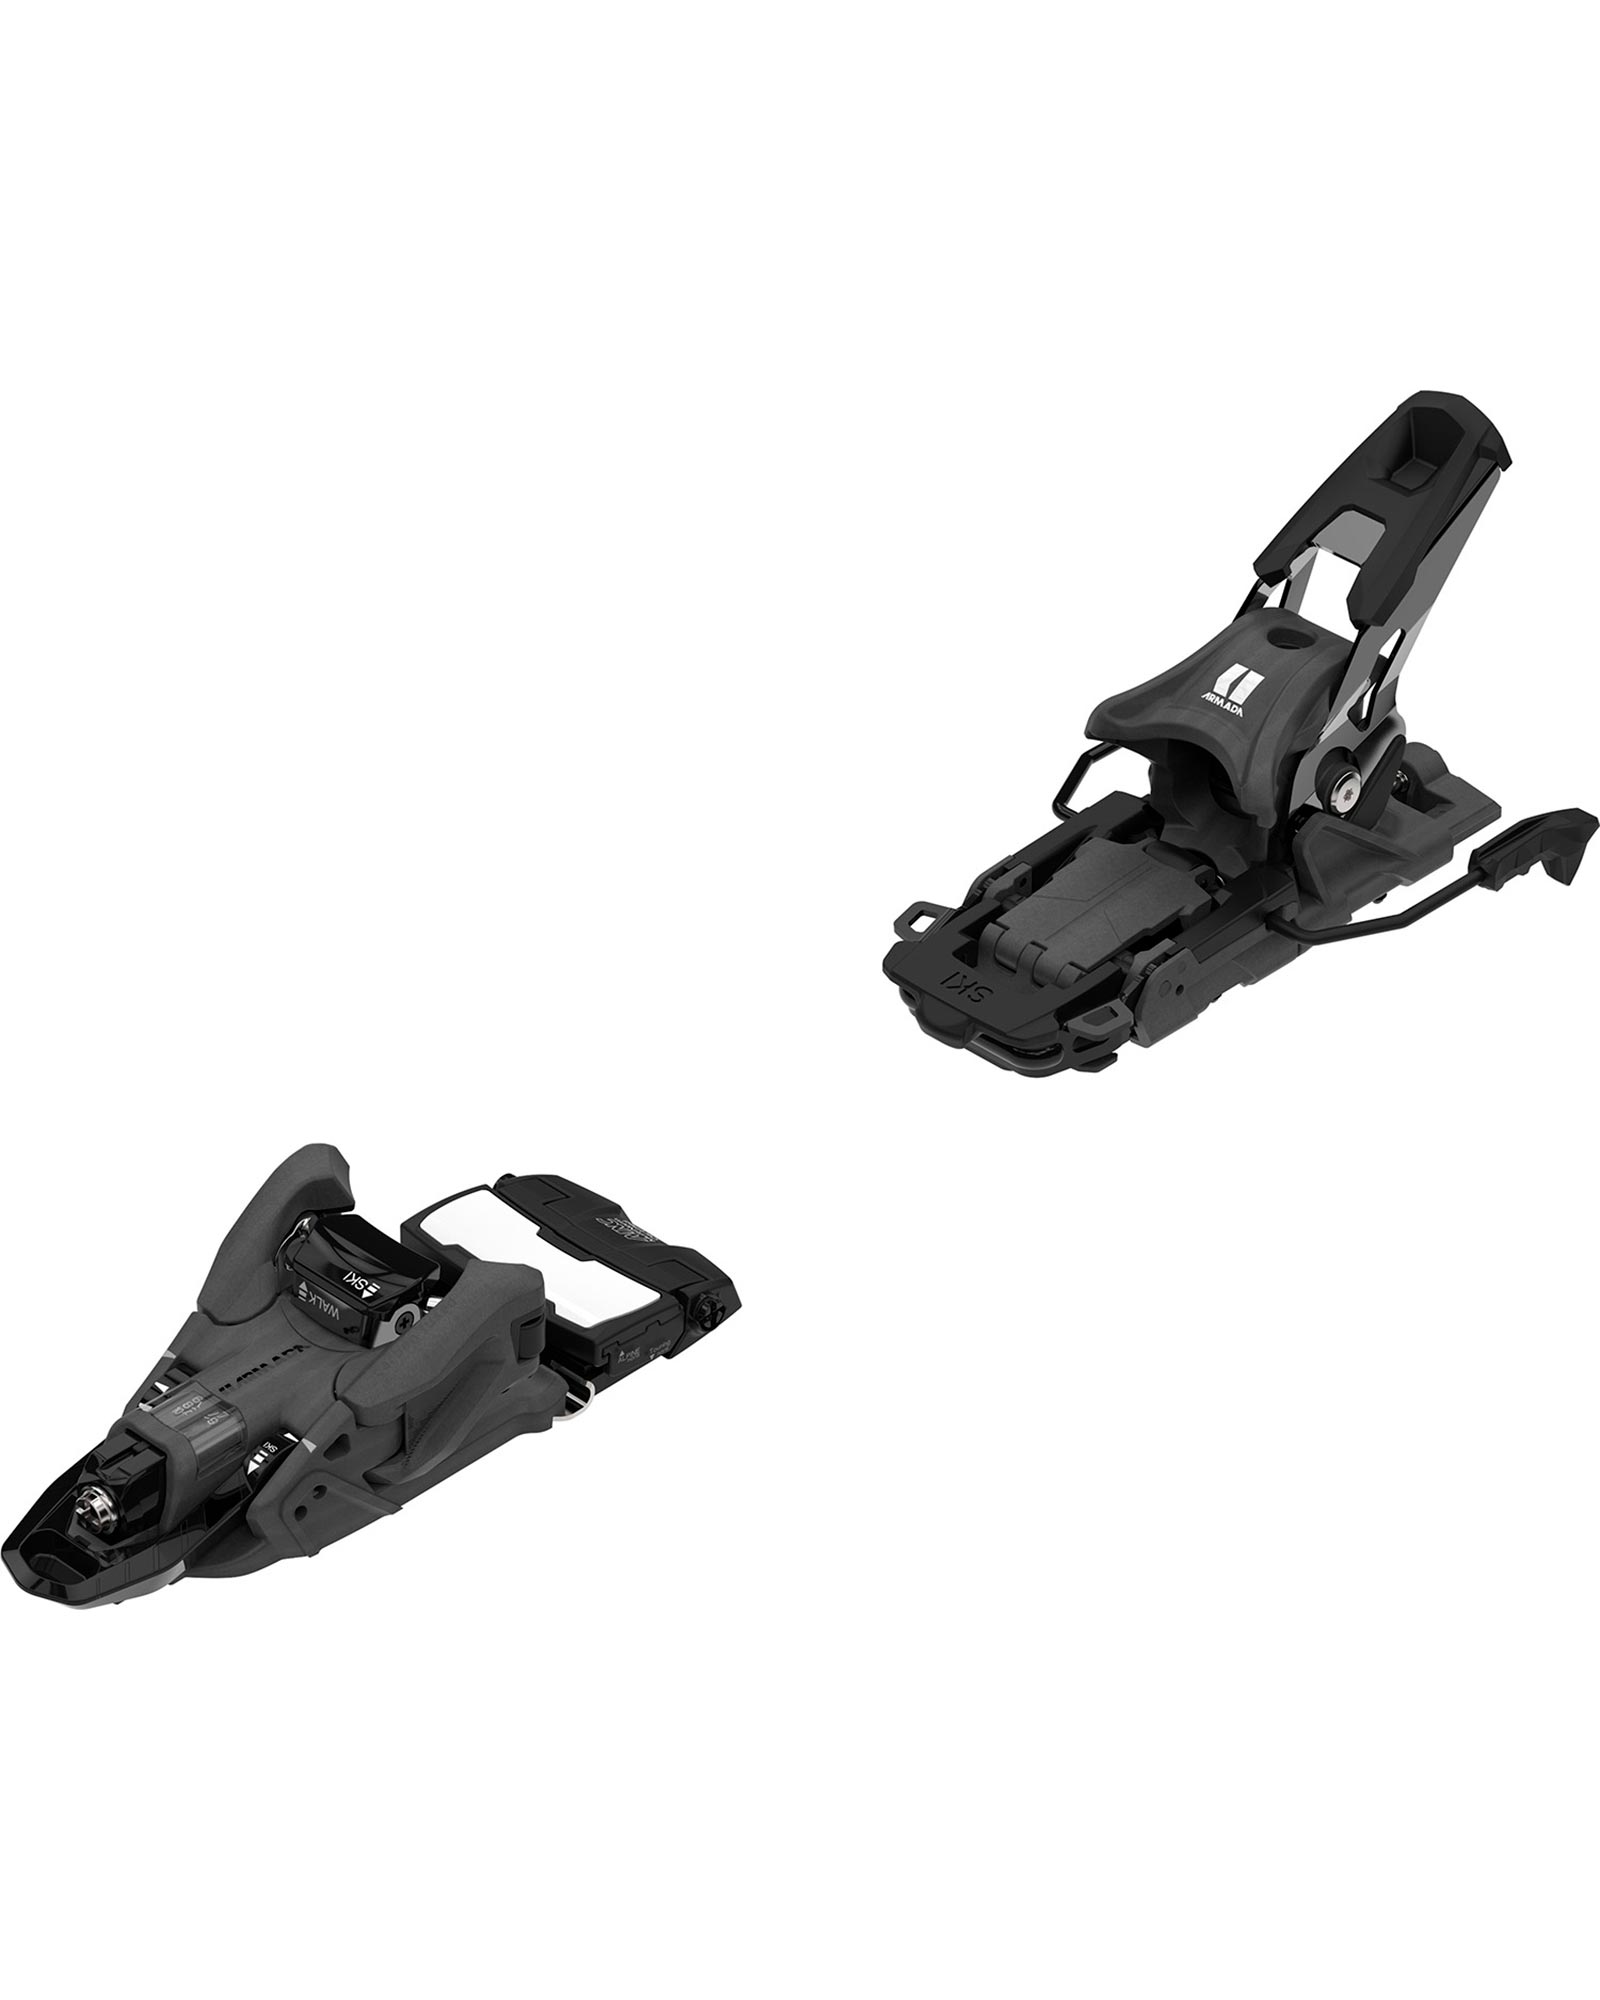 Armada N Shift MNC 10 110mm Backcountry Ski Bindings 2020 / 2021 0